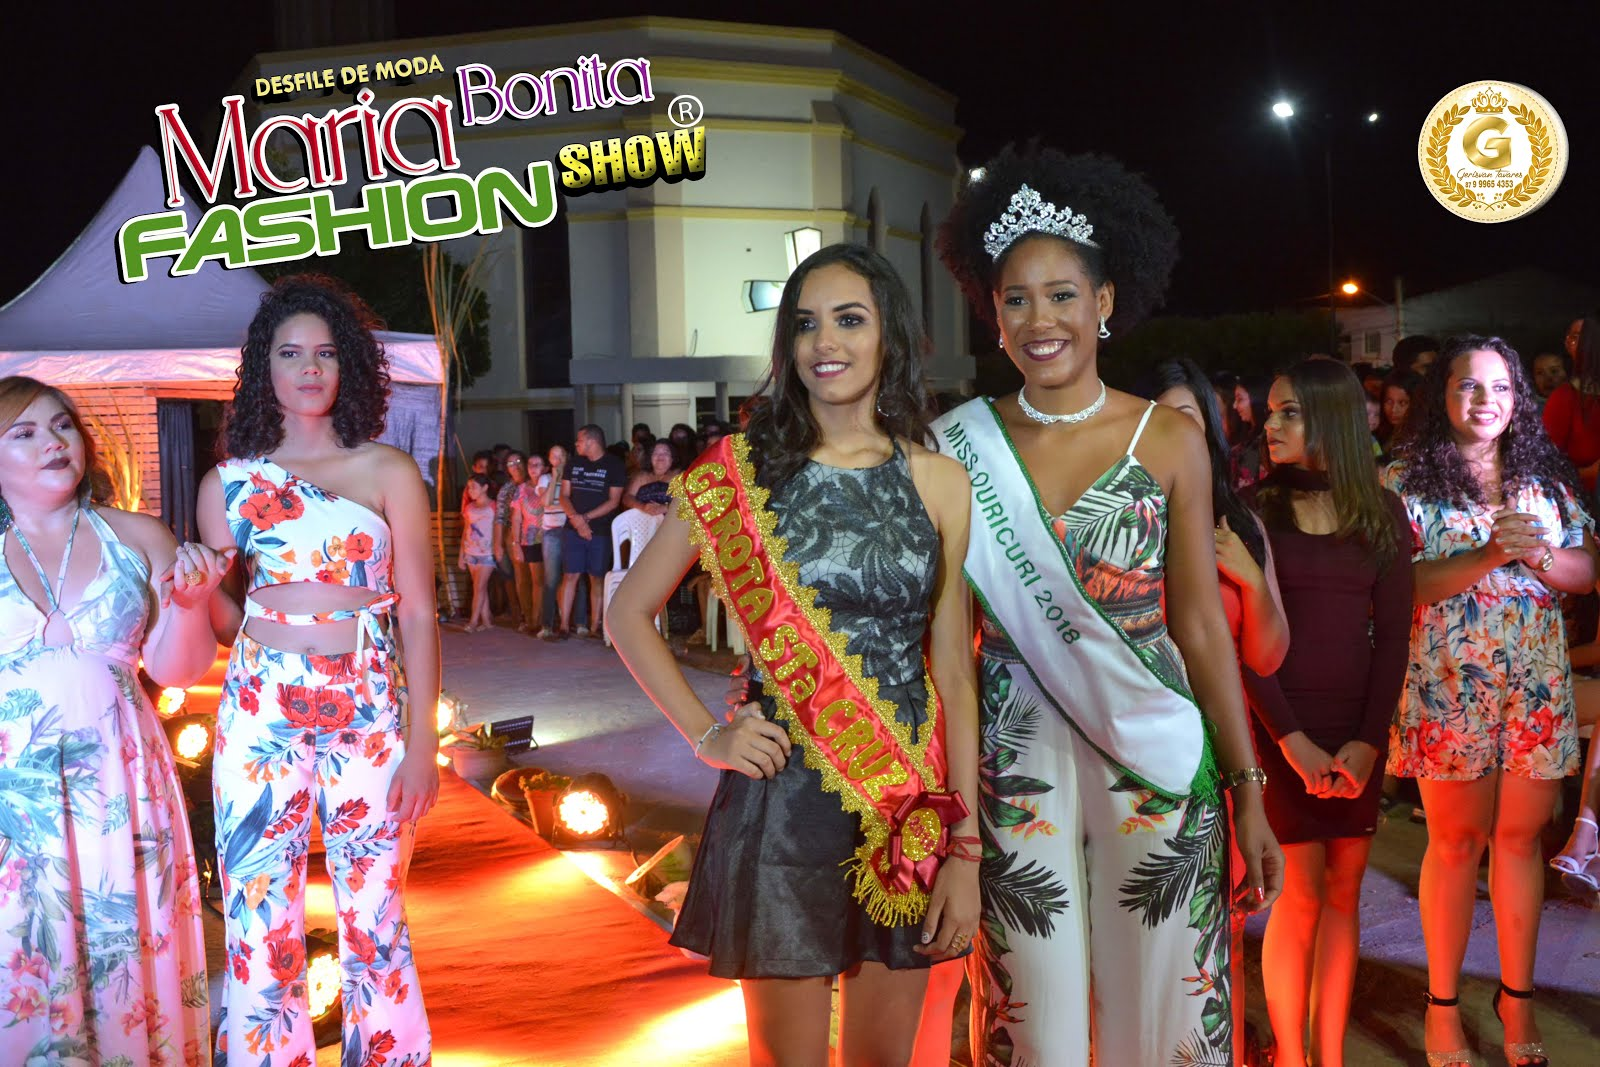 Fotos do Evento MARIA BONITA FASHION SHOW